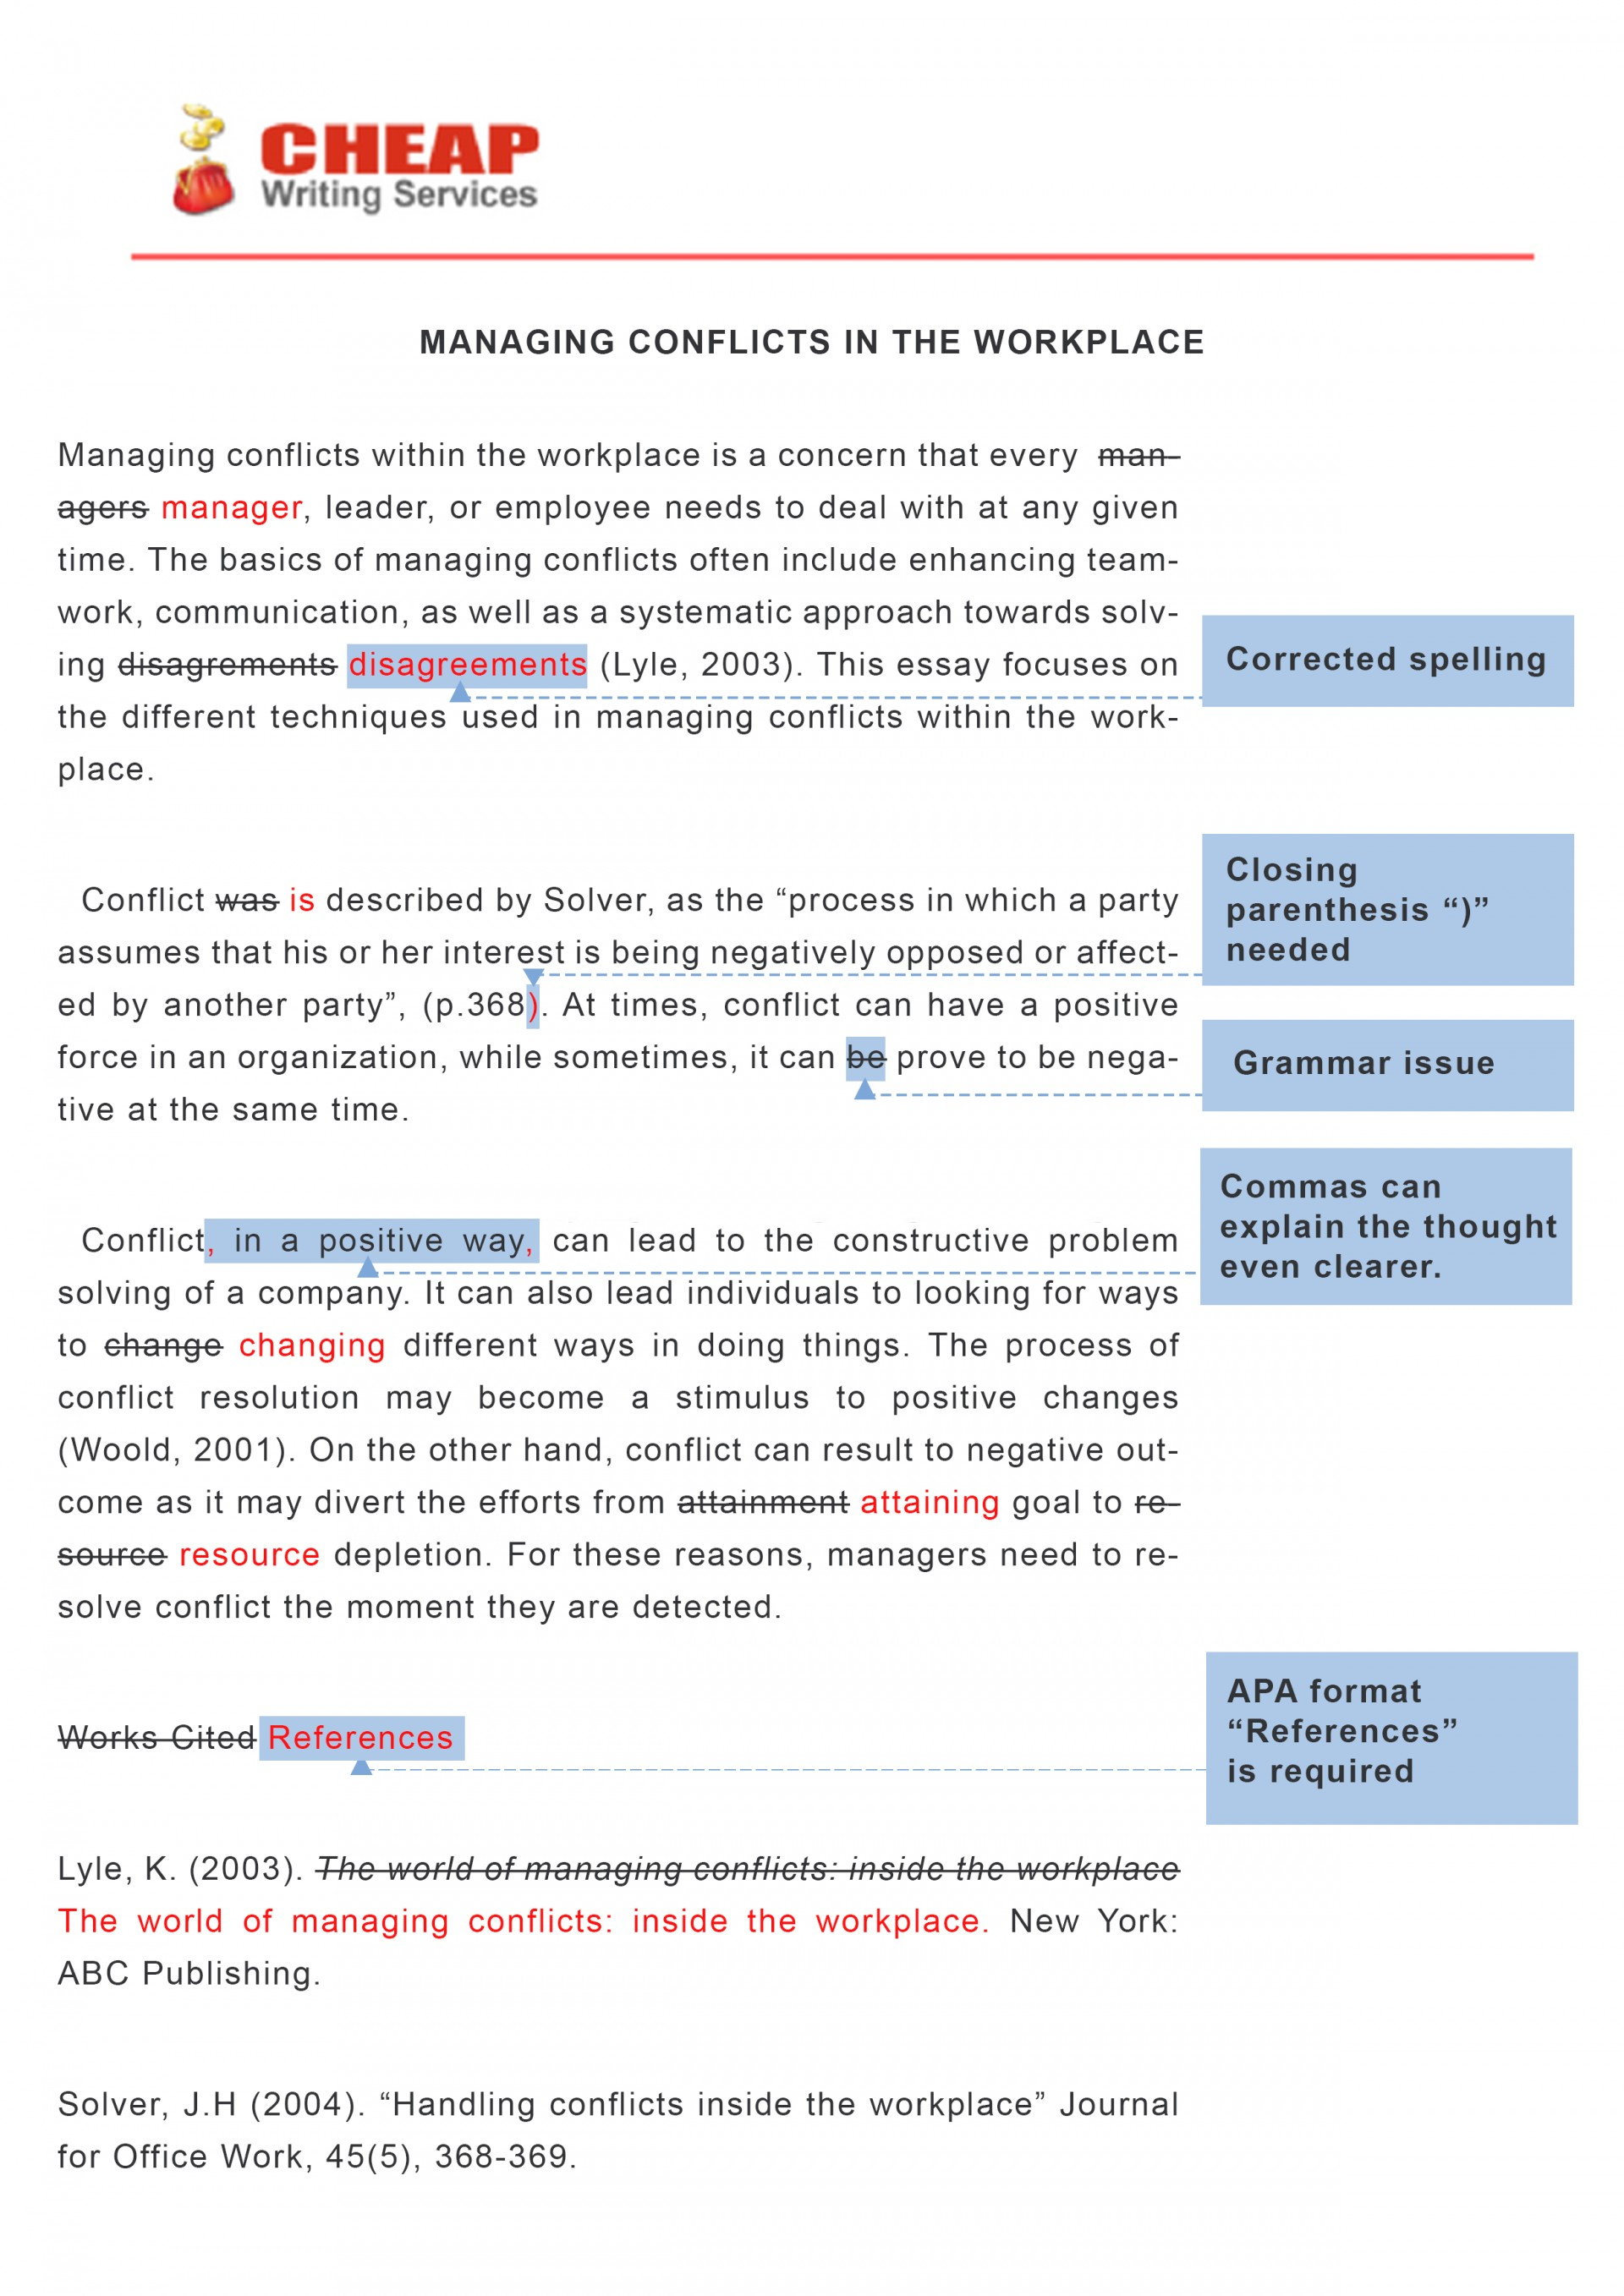 003 Essay Example Editing Cheap Top Writing Service Reviews 2017 Canada 1920